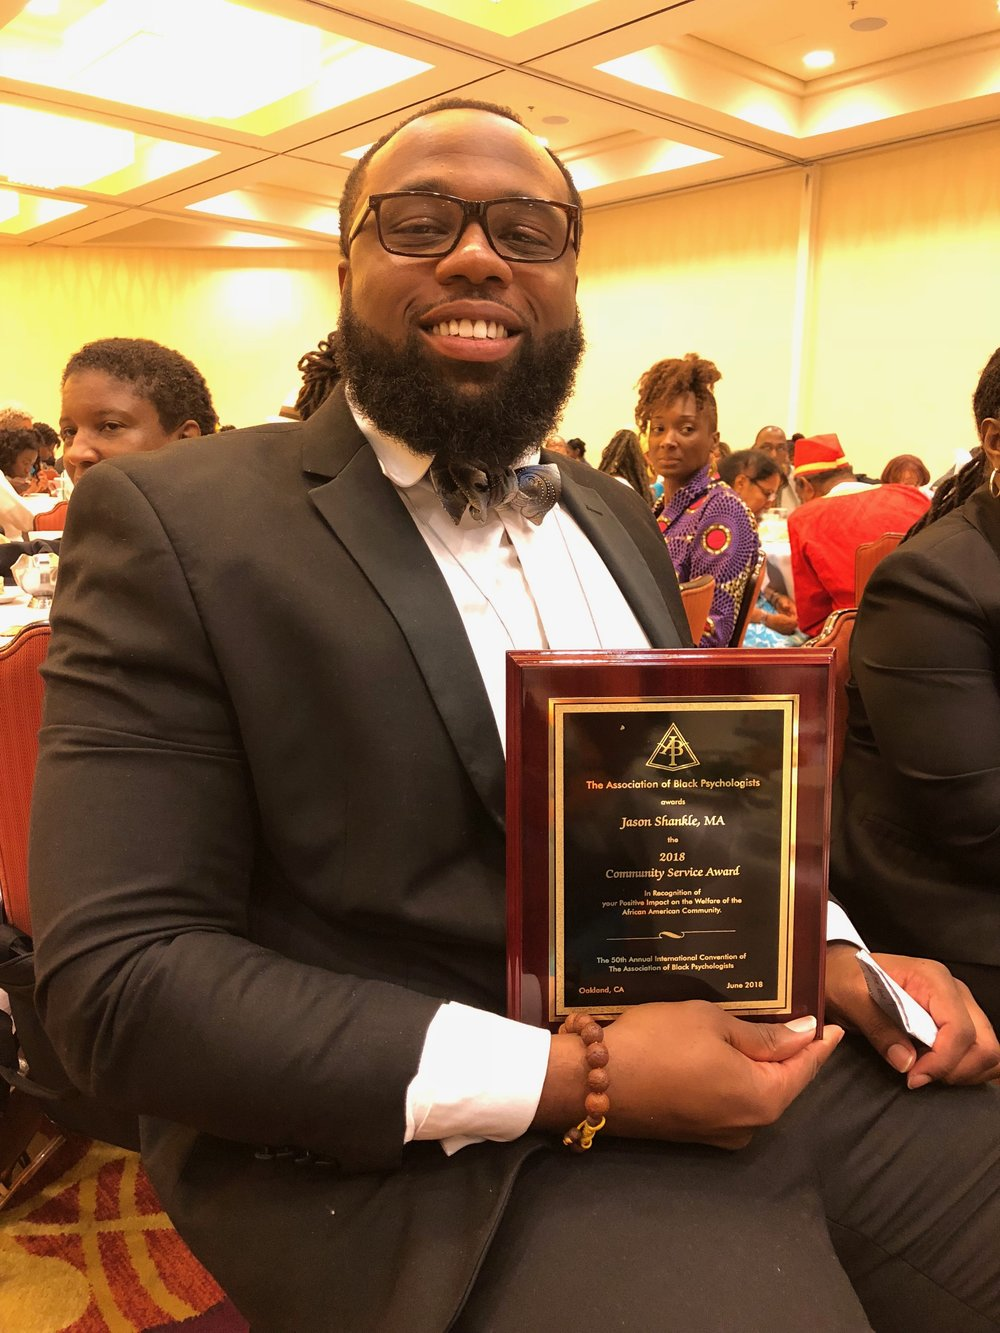 2018 Community Service Award - In recognition of your Positive Impact on the Welfare of the African American Community.The 50th Annual International Convention of The Association of Black Psychologists